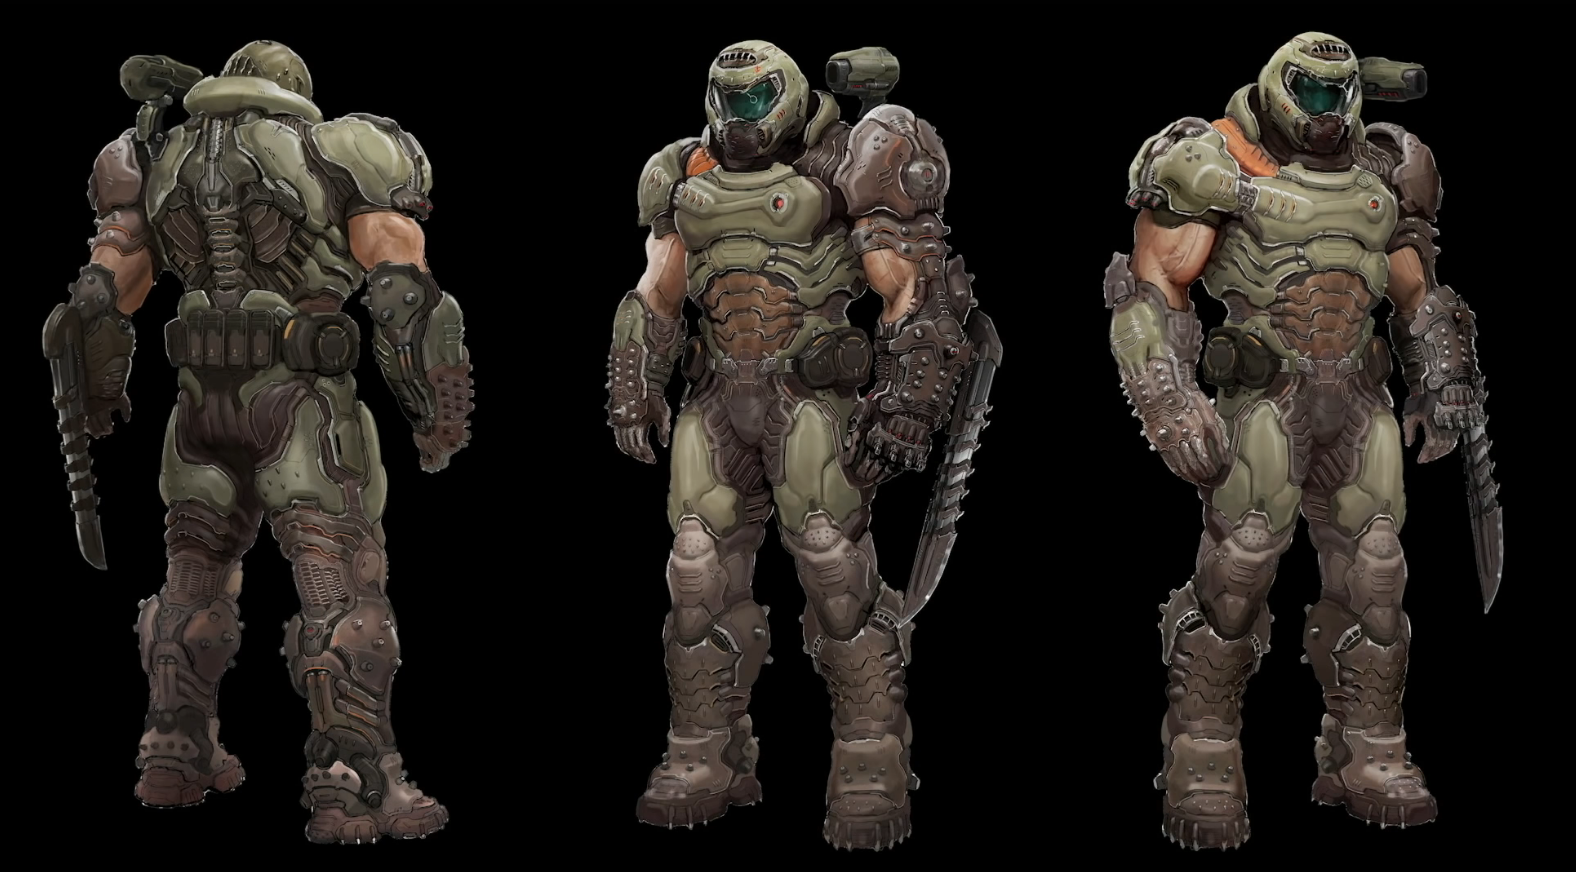 All The Wild Facts We Learned About Doom Eternal From The Quakecon Reveal Doom Videogame Doom Game Doom